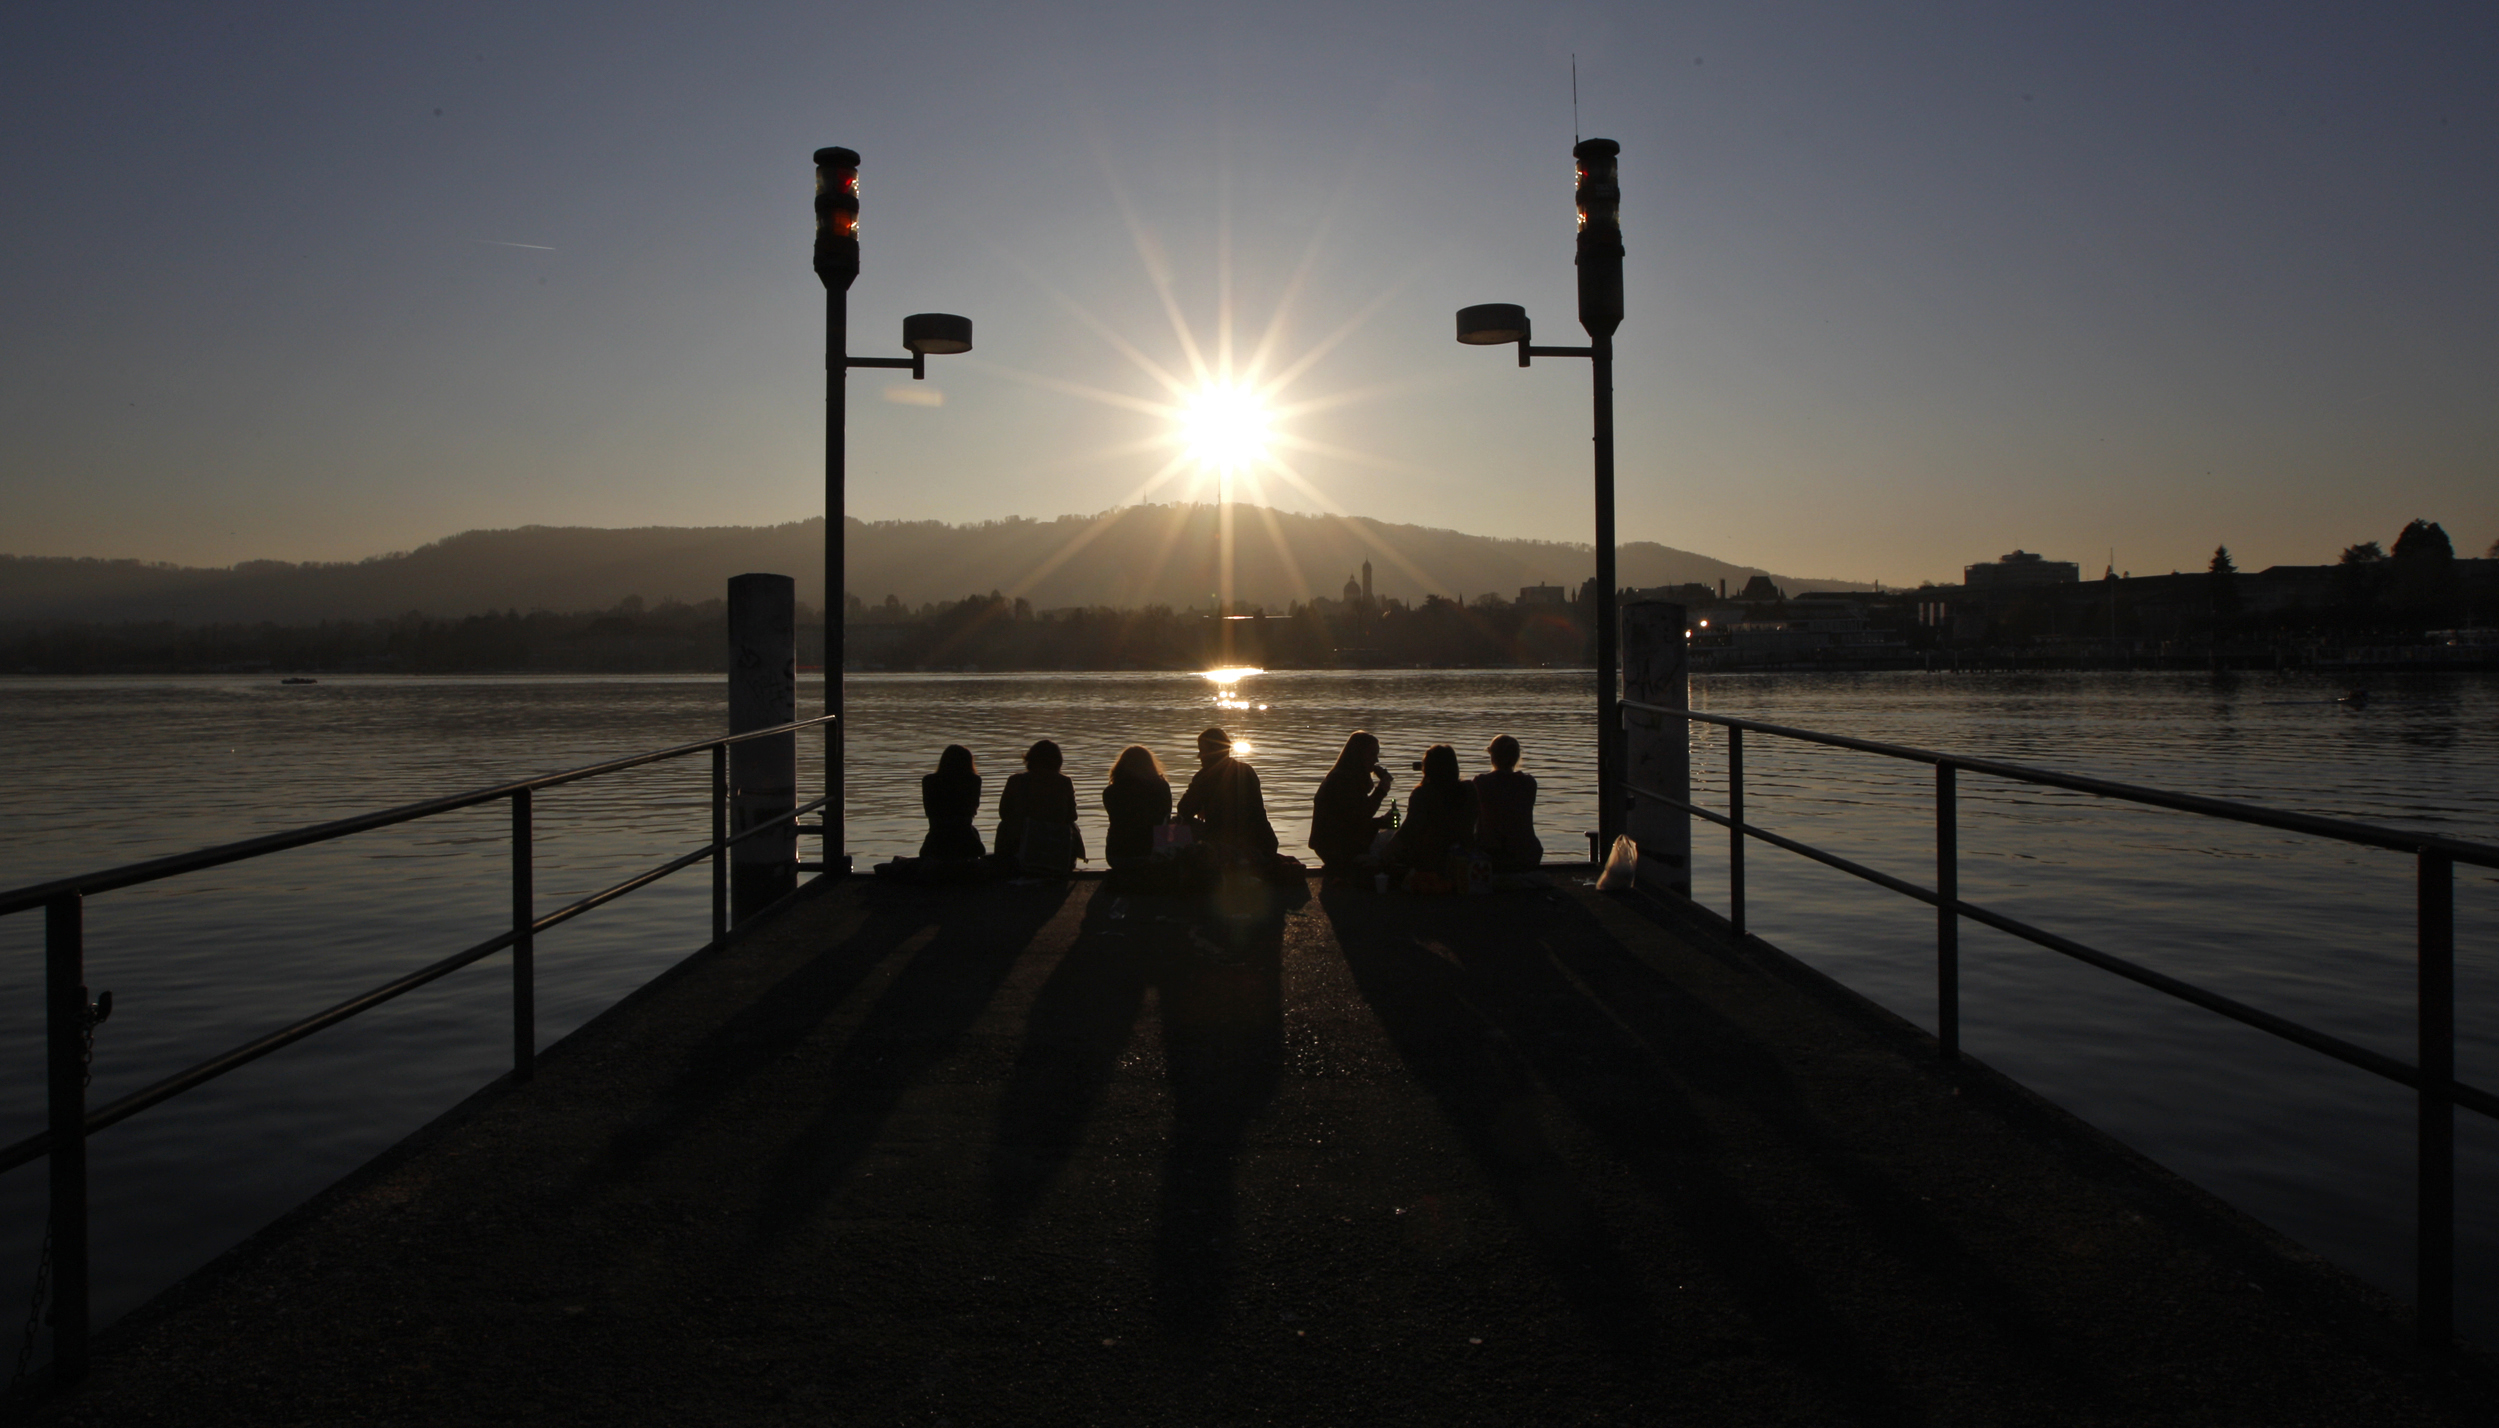 People on a pier are silhouetted as they enjoy a sunny and unusually mild afternoon on the edge of Lake Zurich, March 2, 2012. REUTERS/Christian Hartmann (SWITZERLAND - Tags: ENVIRONMENT SOCIETY) - RTR2YQVU